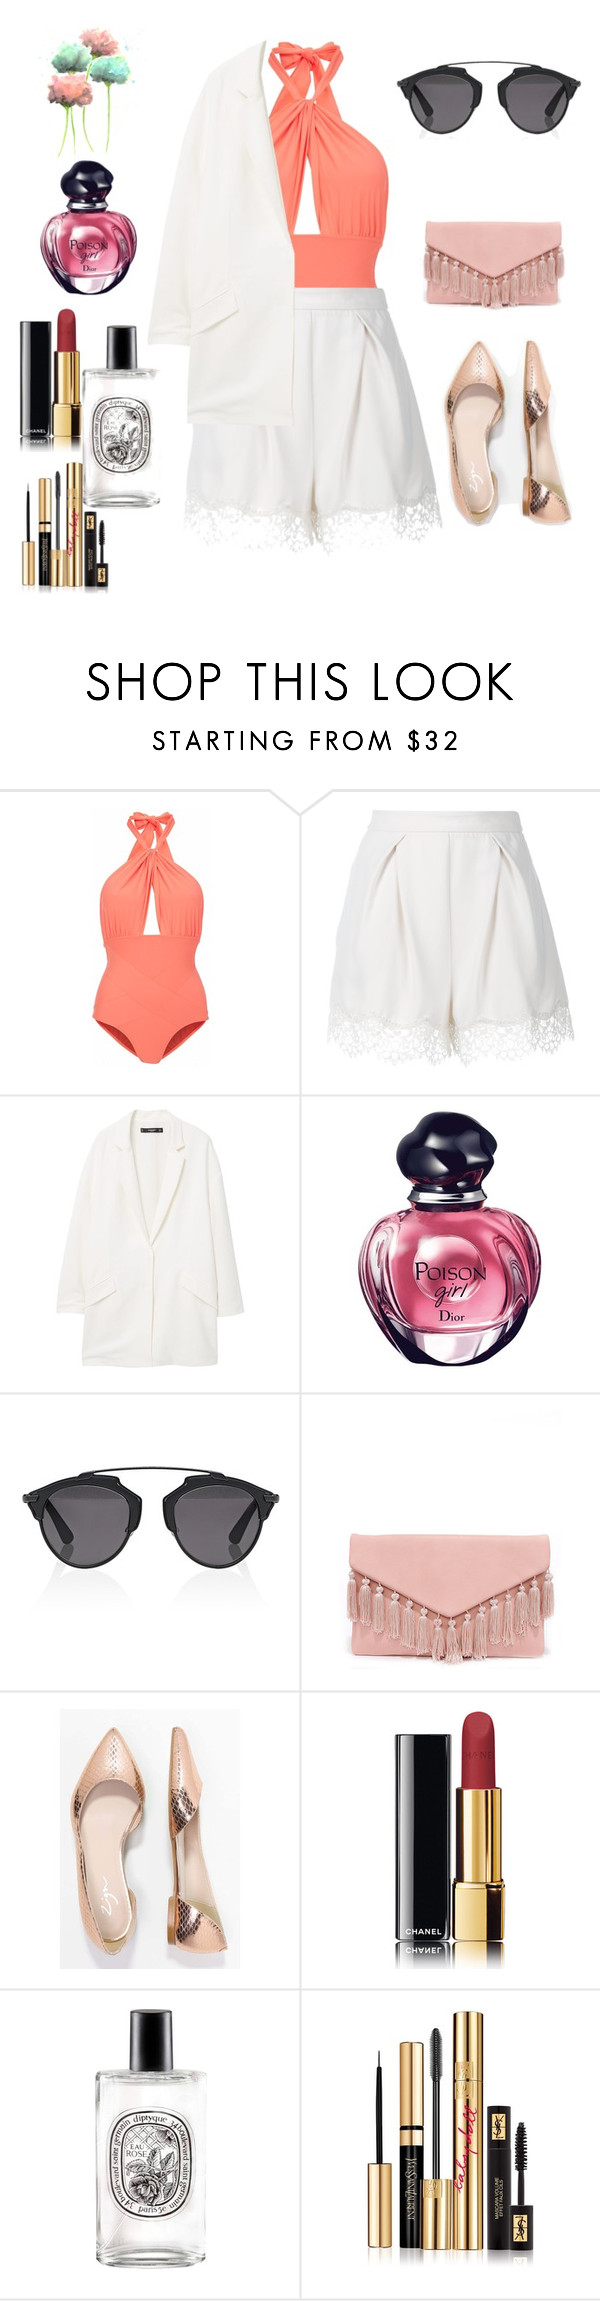 """""""Summer Style"""" by mat-beades ❤ liked on Polyvore featuring Lilliput & Felix, Zimmermann, MANGO, Christian Dior, LULUS, Zign, Chanel, Diptyque, Yves Saint Laurent and Summer"""